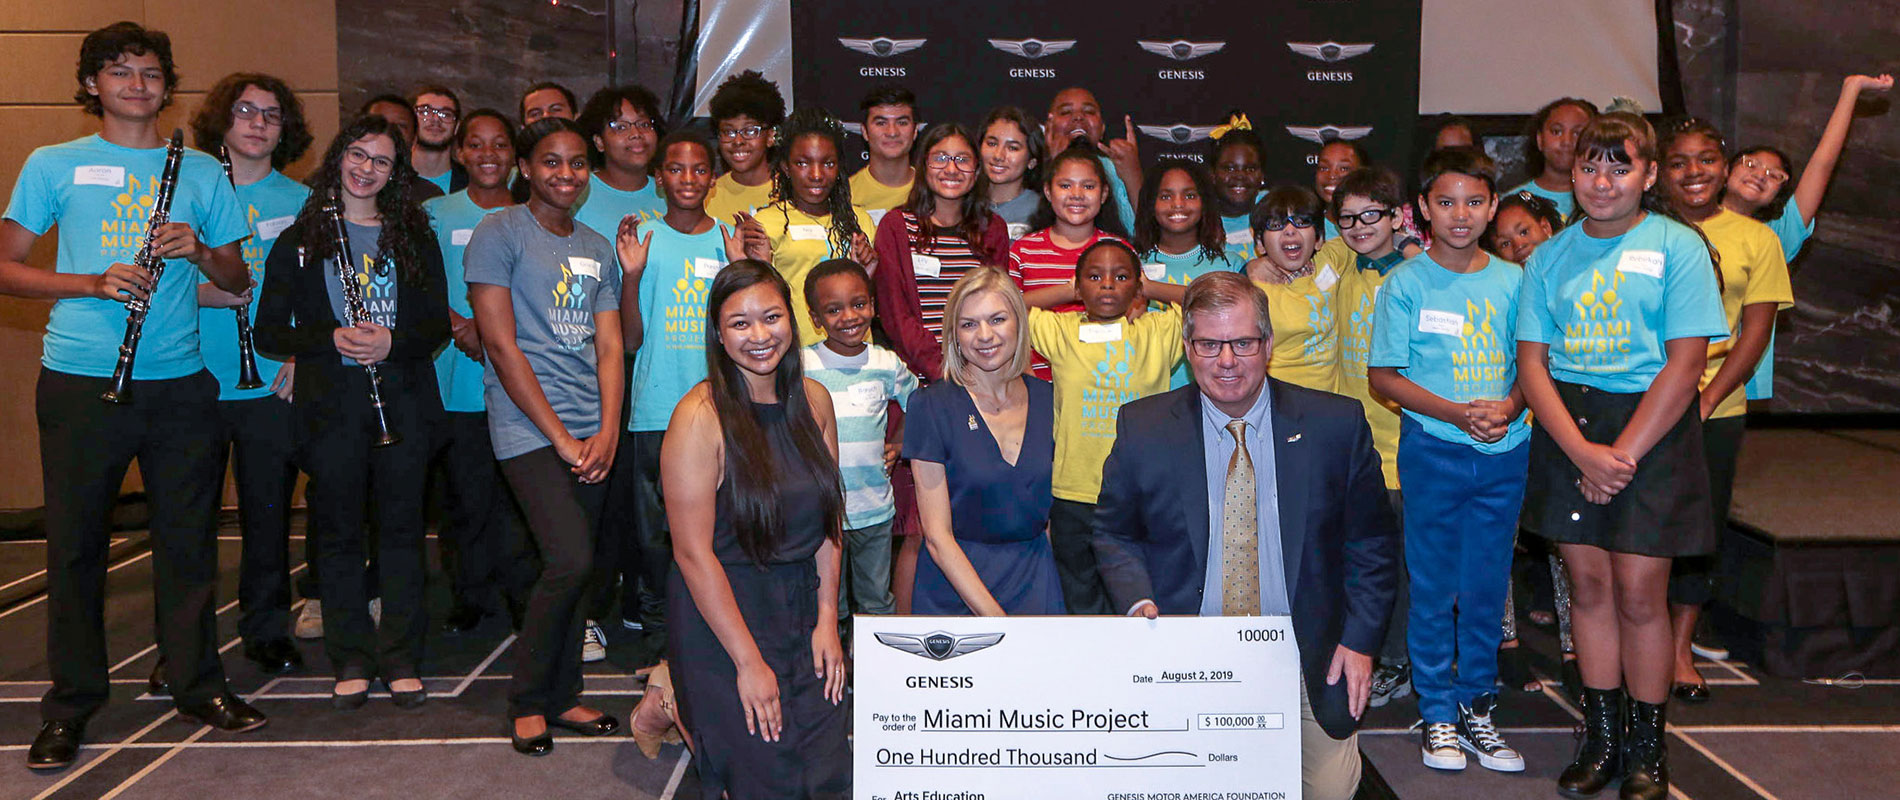 Genesis Motor America Announces A $100,000 Grant To The Miami Music Project In Miami To Support Arts Education